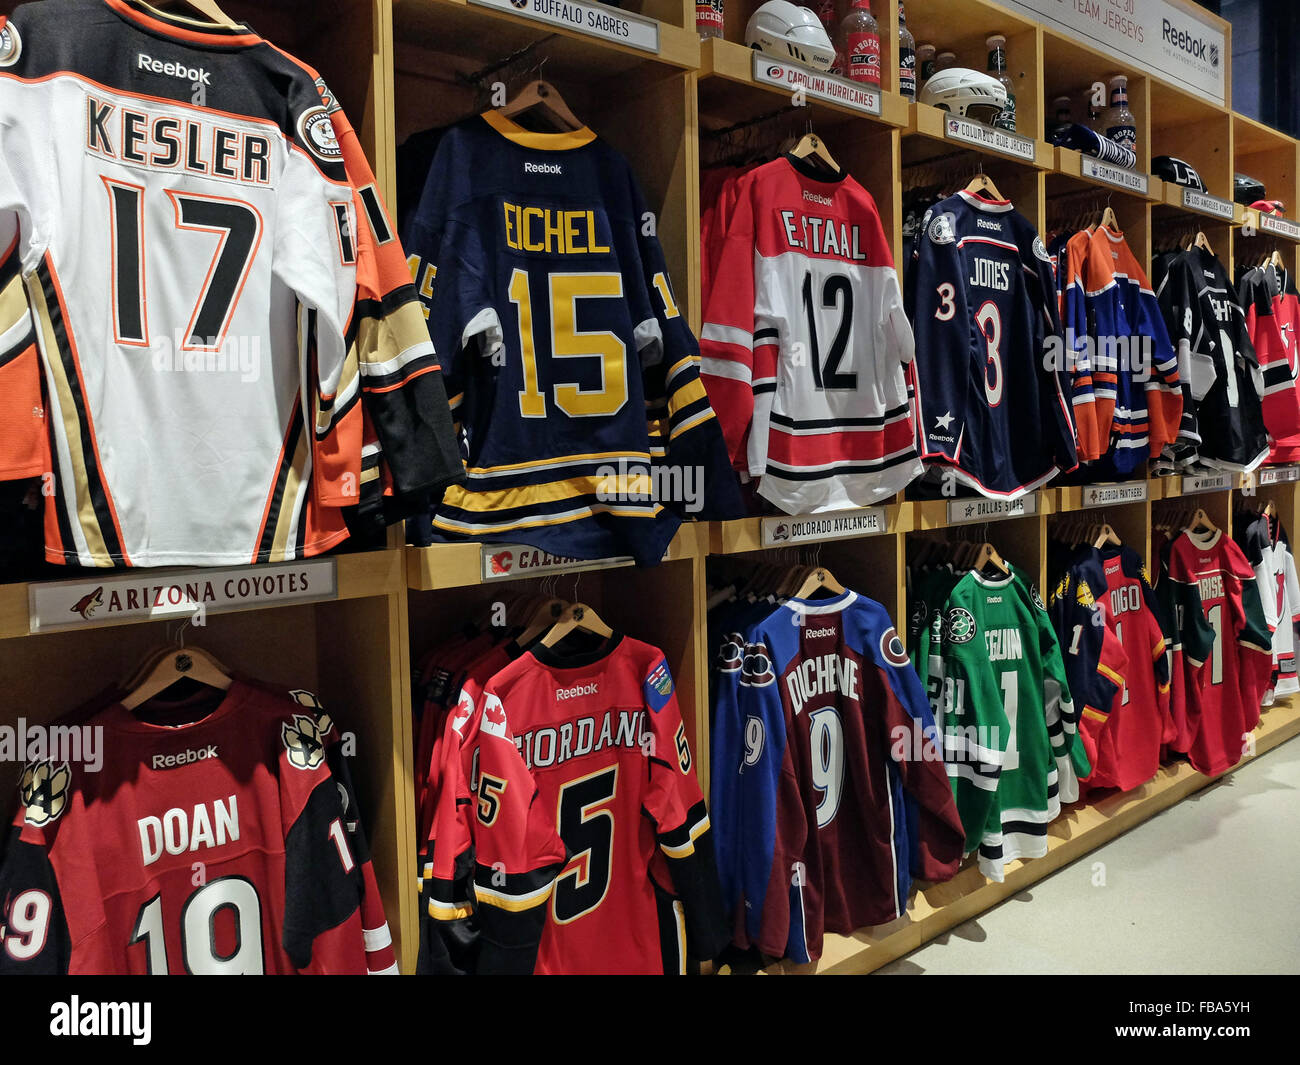 NHL Merchandise and Apparel from the Ultimate NHL Shop. Hockey fans can gear up with the brand new adidas NHL Apparel from skuzcalsase.ml The NHL's best players are sporting the NHL adidas Jersey and our NHL store is stocked with the new ADIZERO looks.